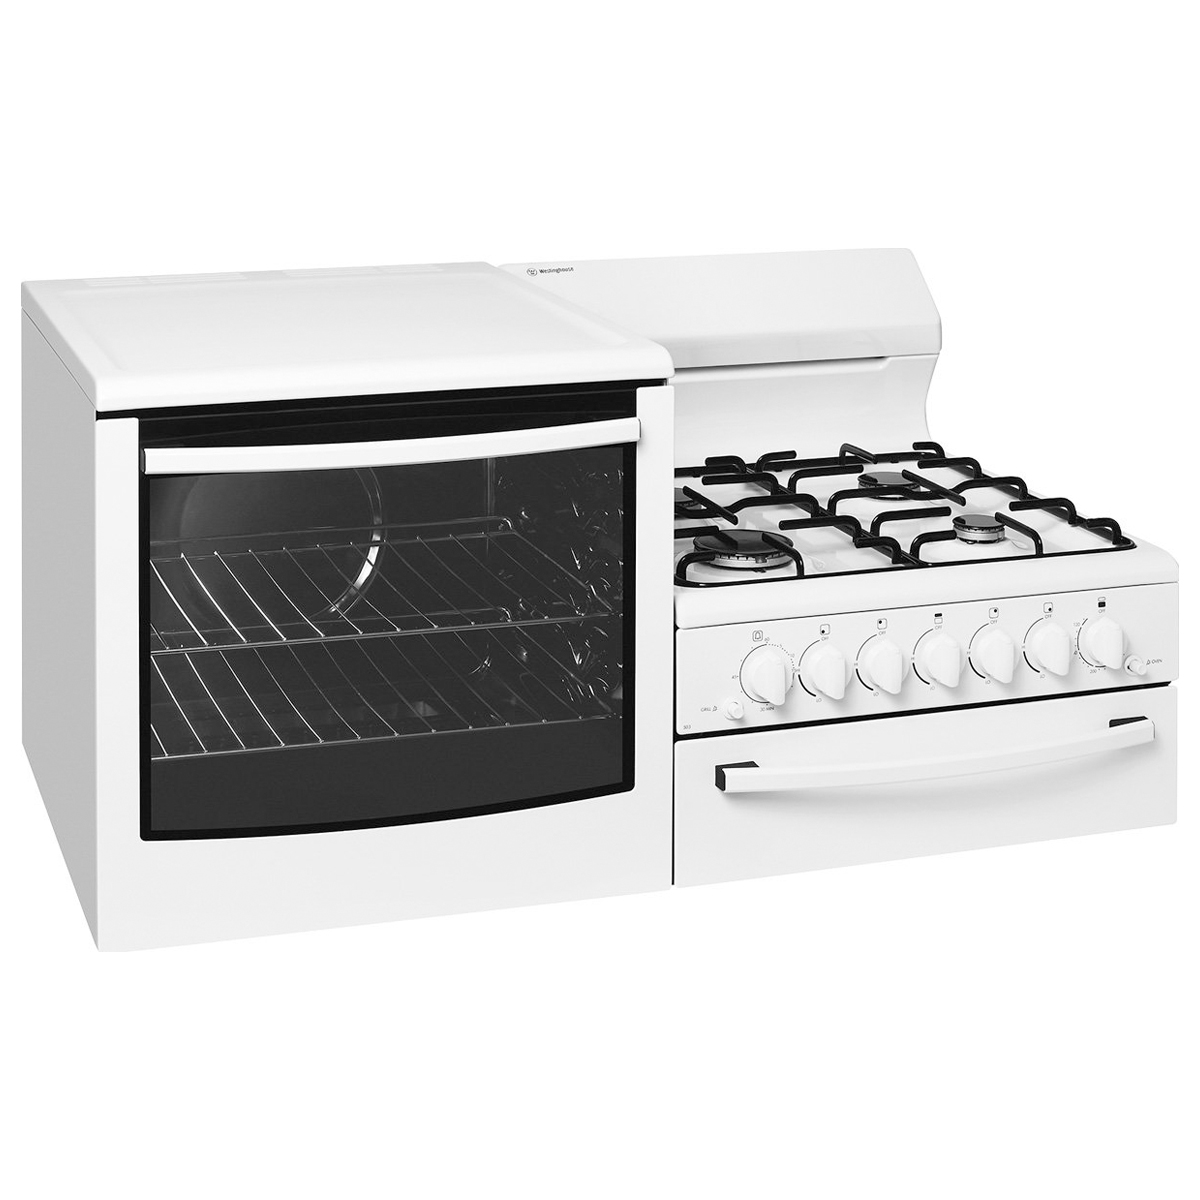 Westinghouse WDG101WA-L Elevated Gas Oven